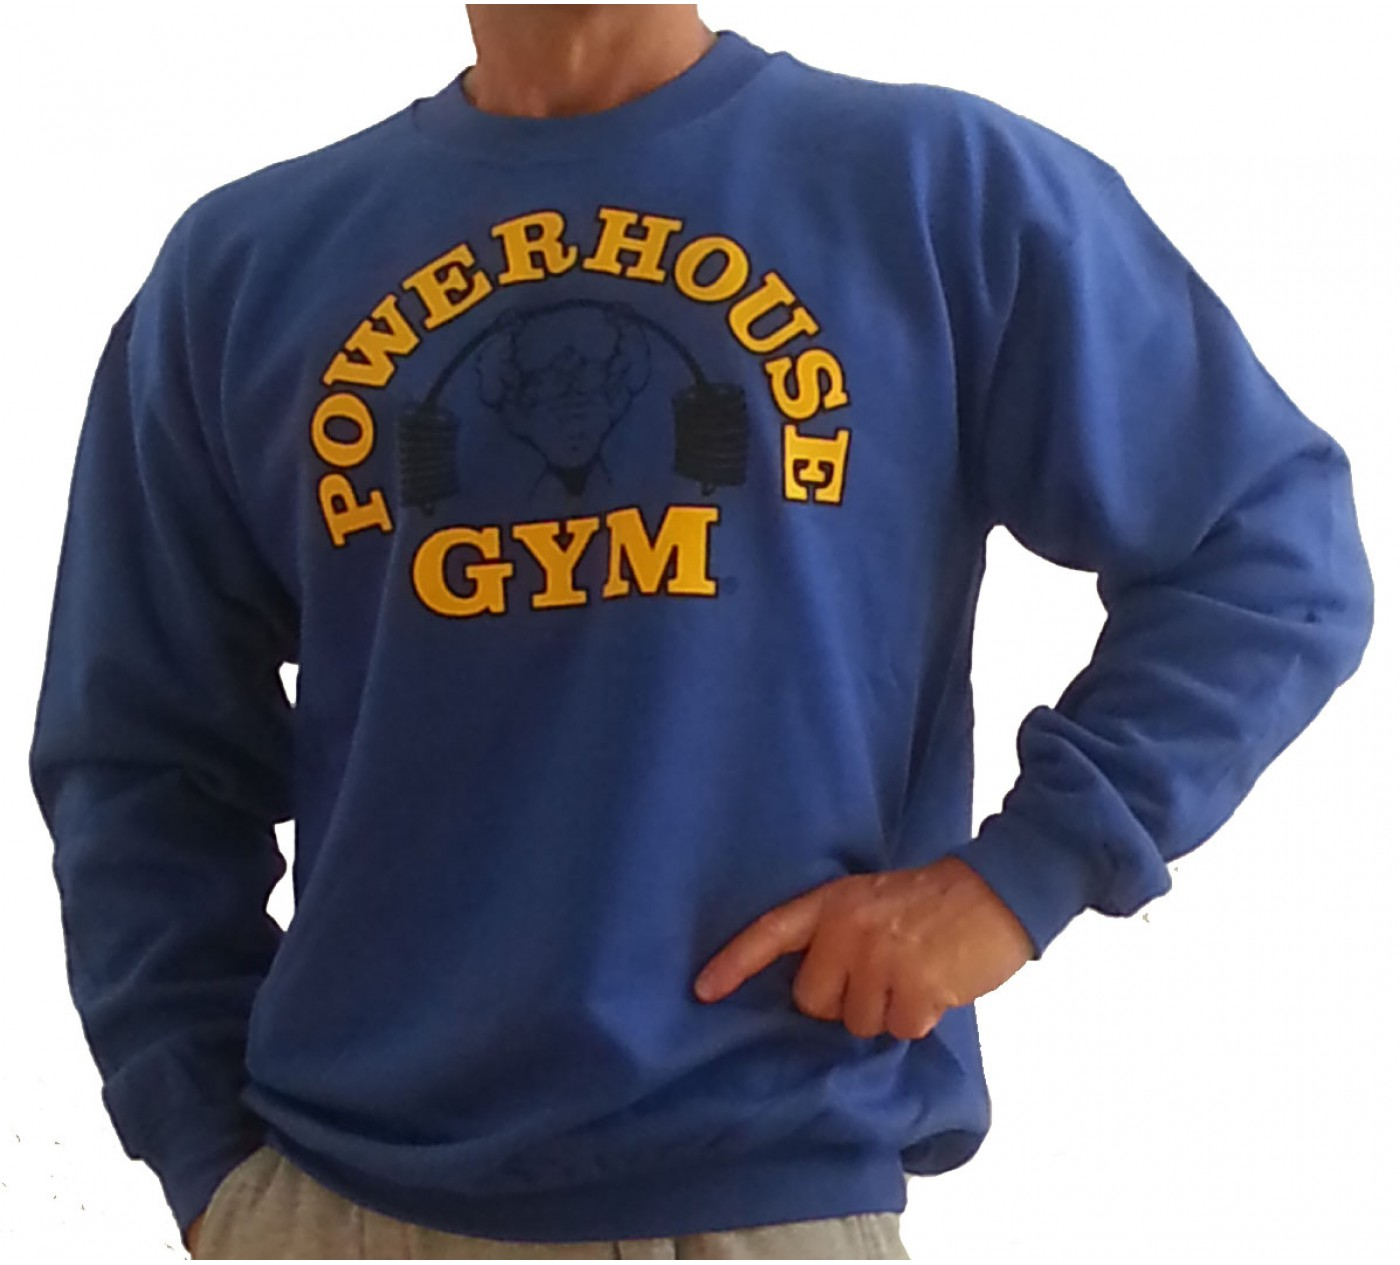 PH800 Powerhouse Gym musculation sweat haut